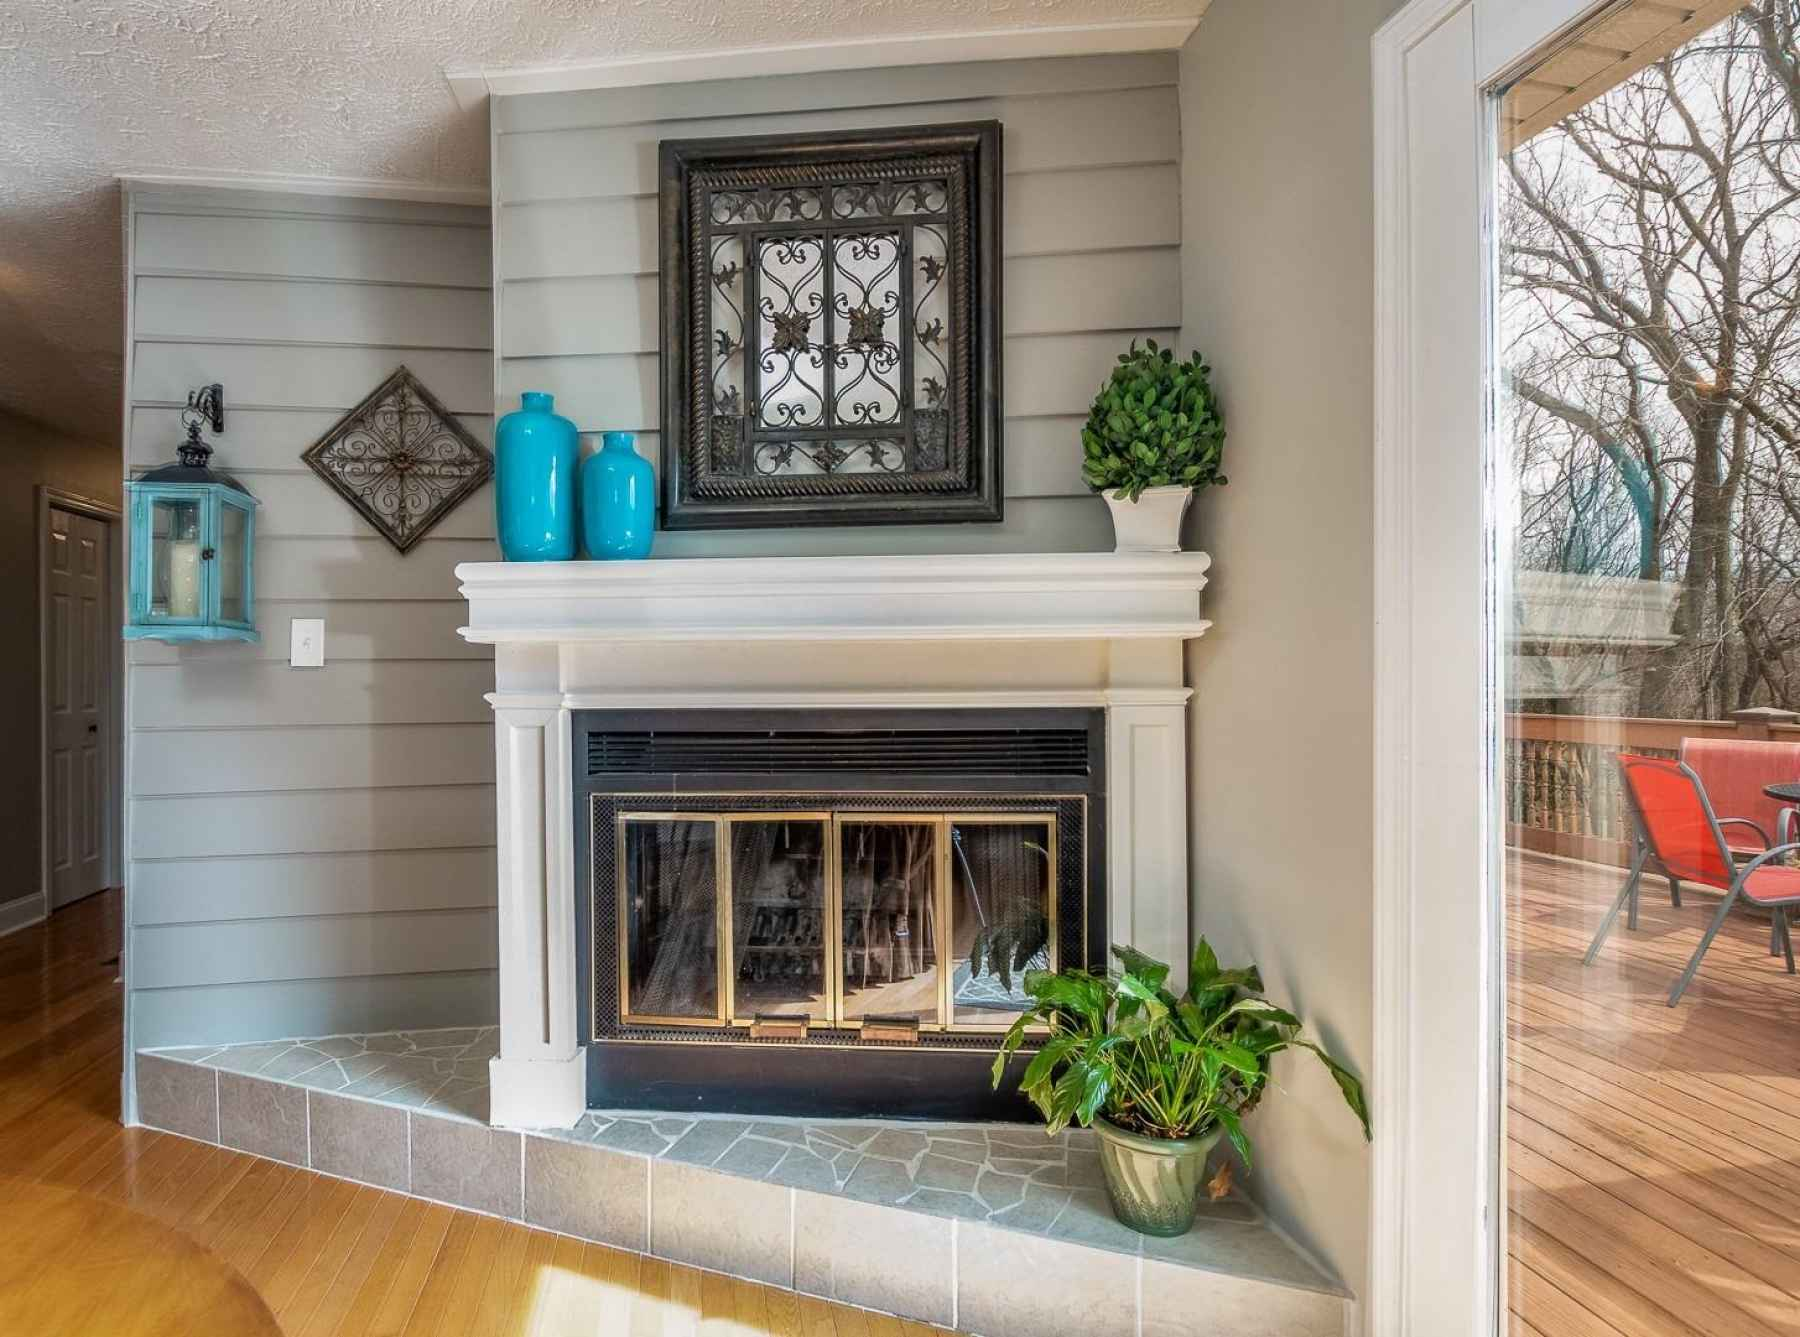 Cozy up to this fireplace